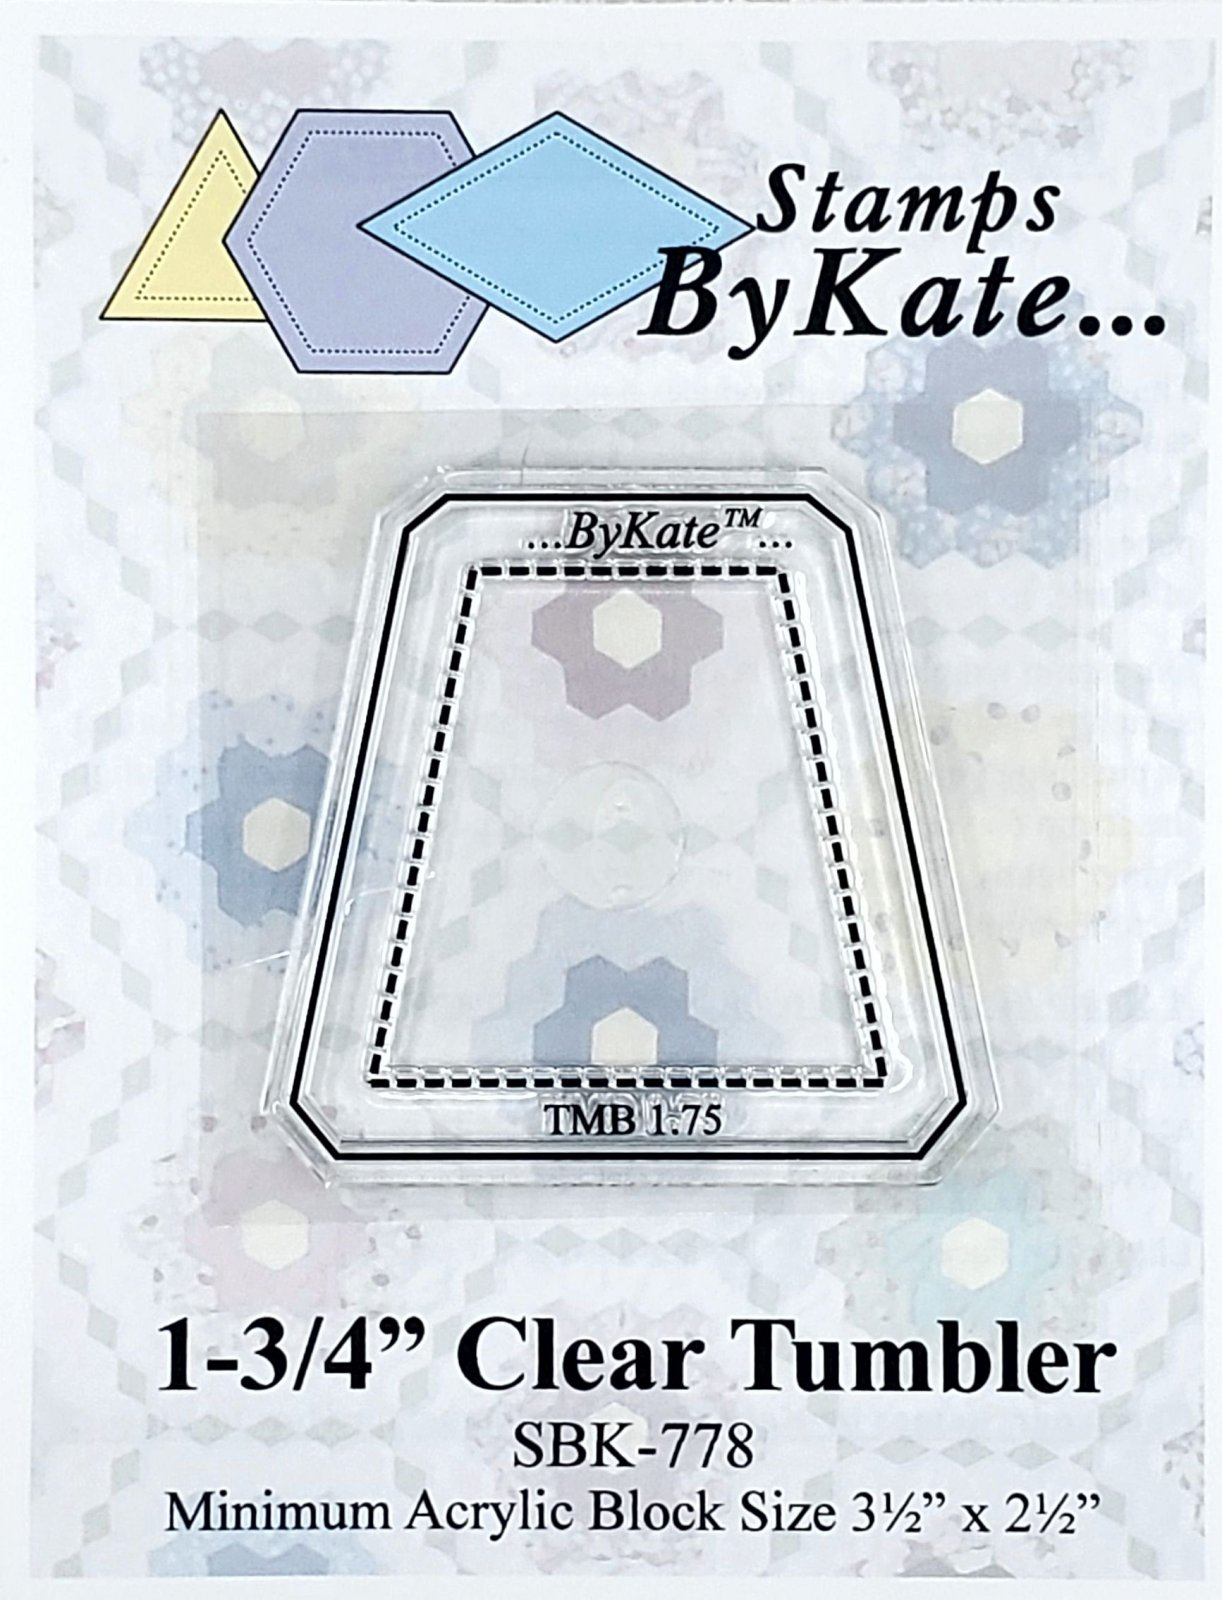 Clear Tumbler Stamp